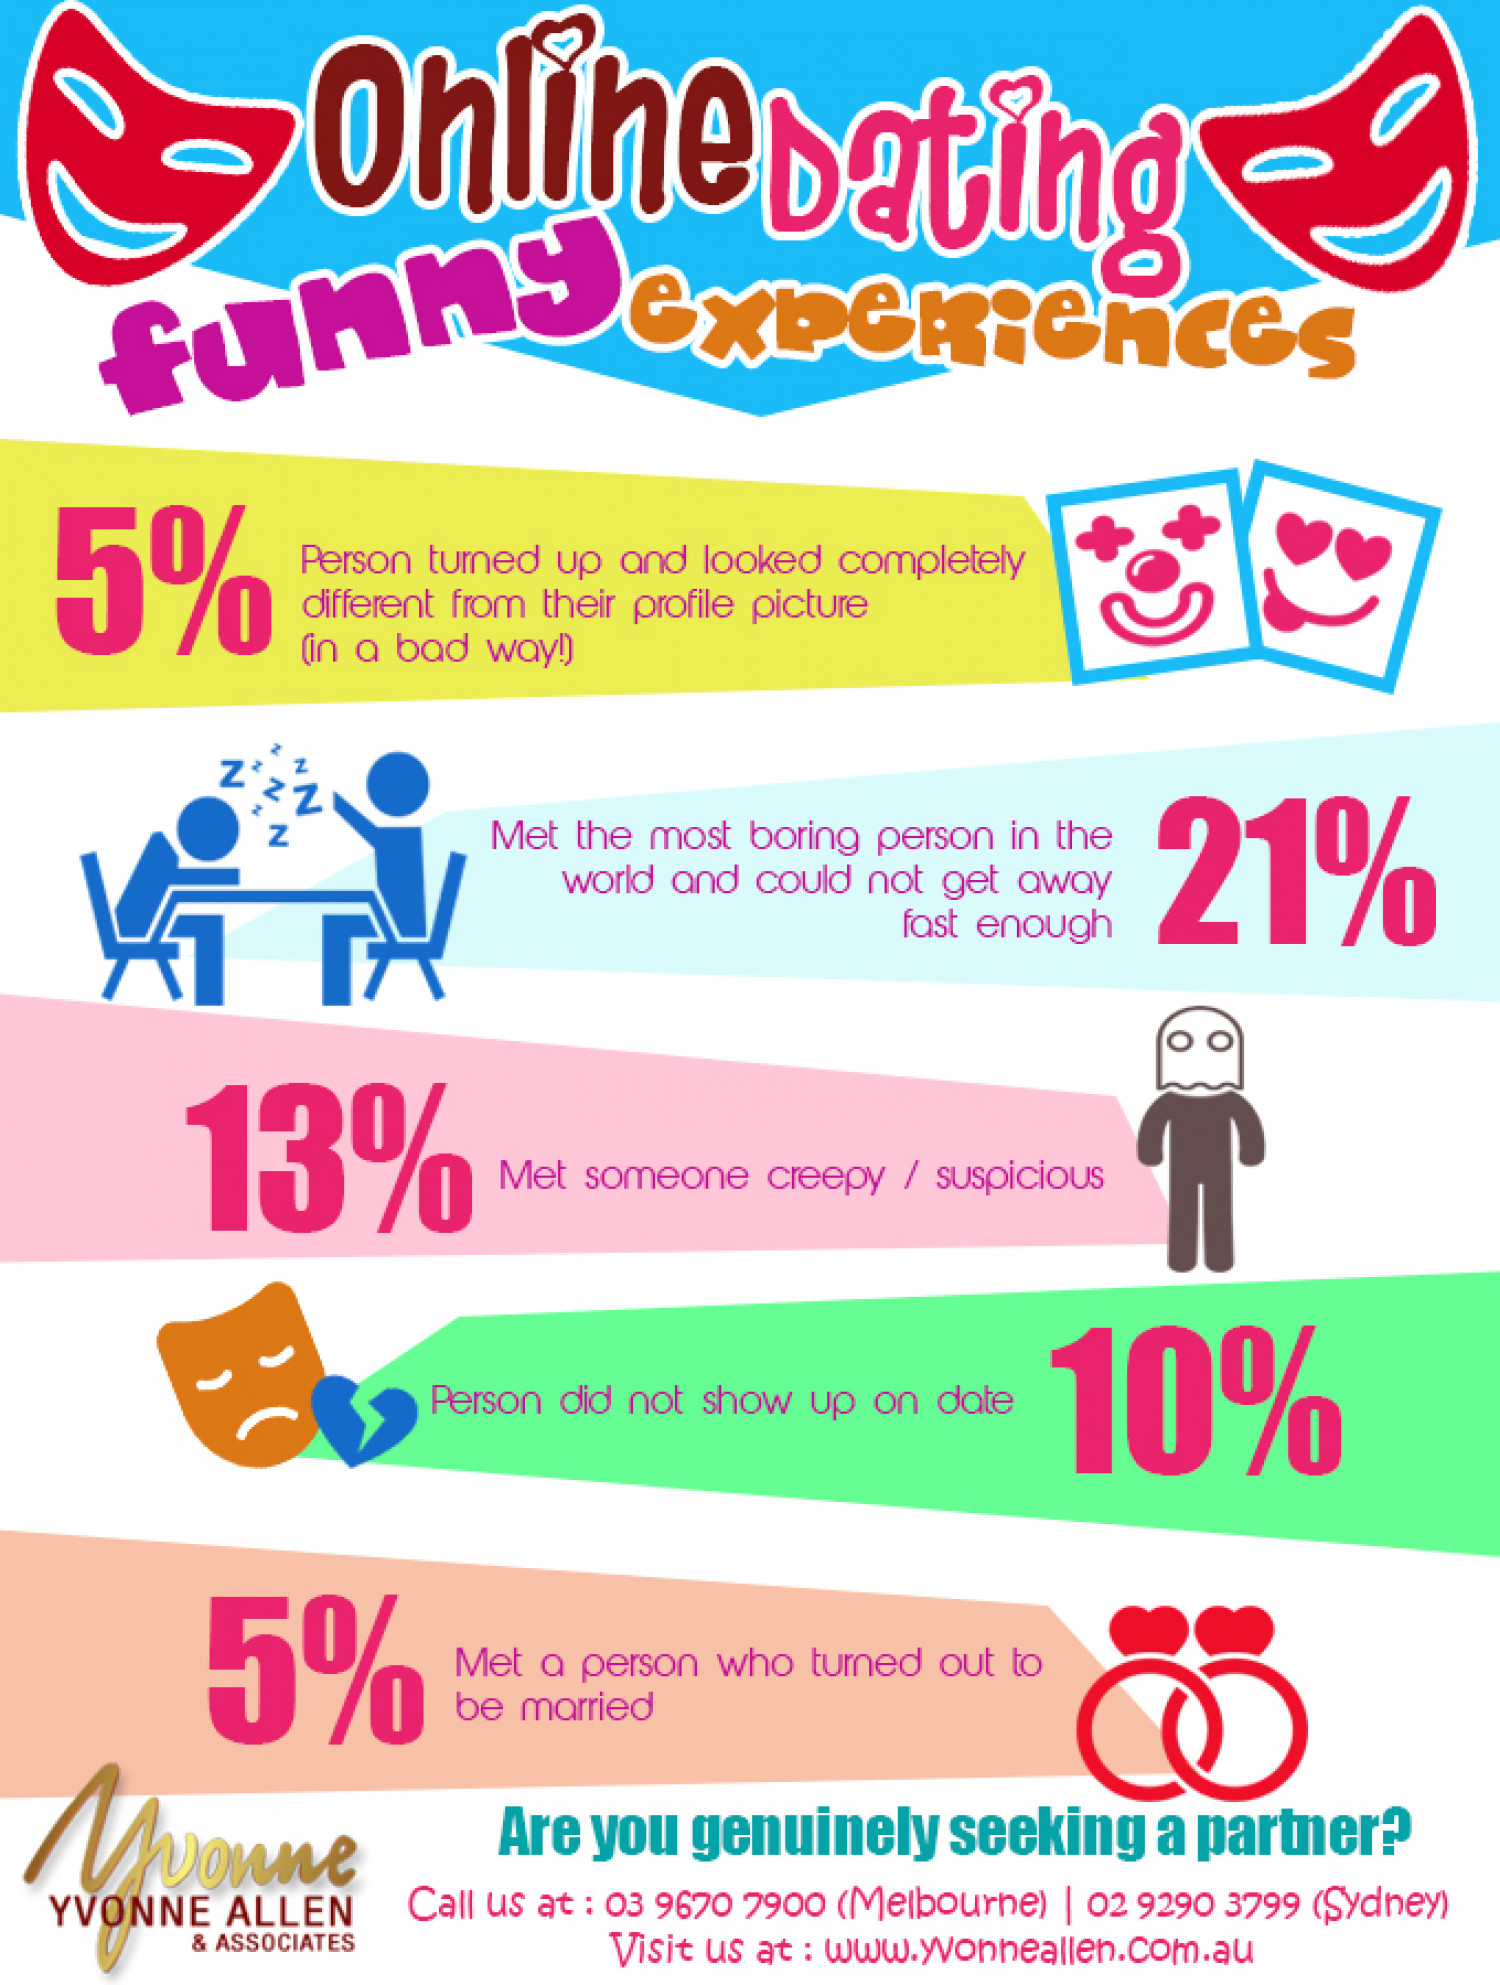 Online Dating Funny Experiences Infographic